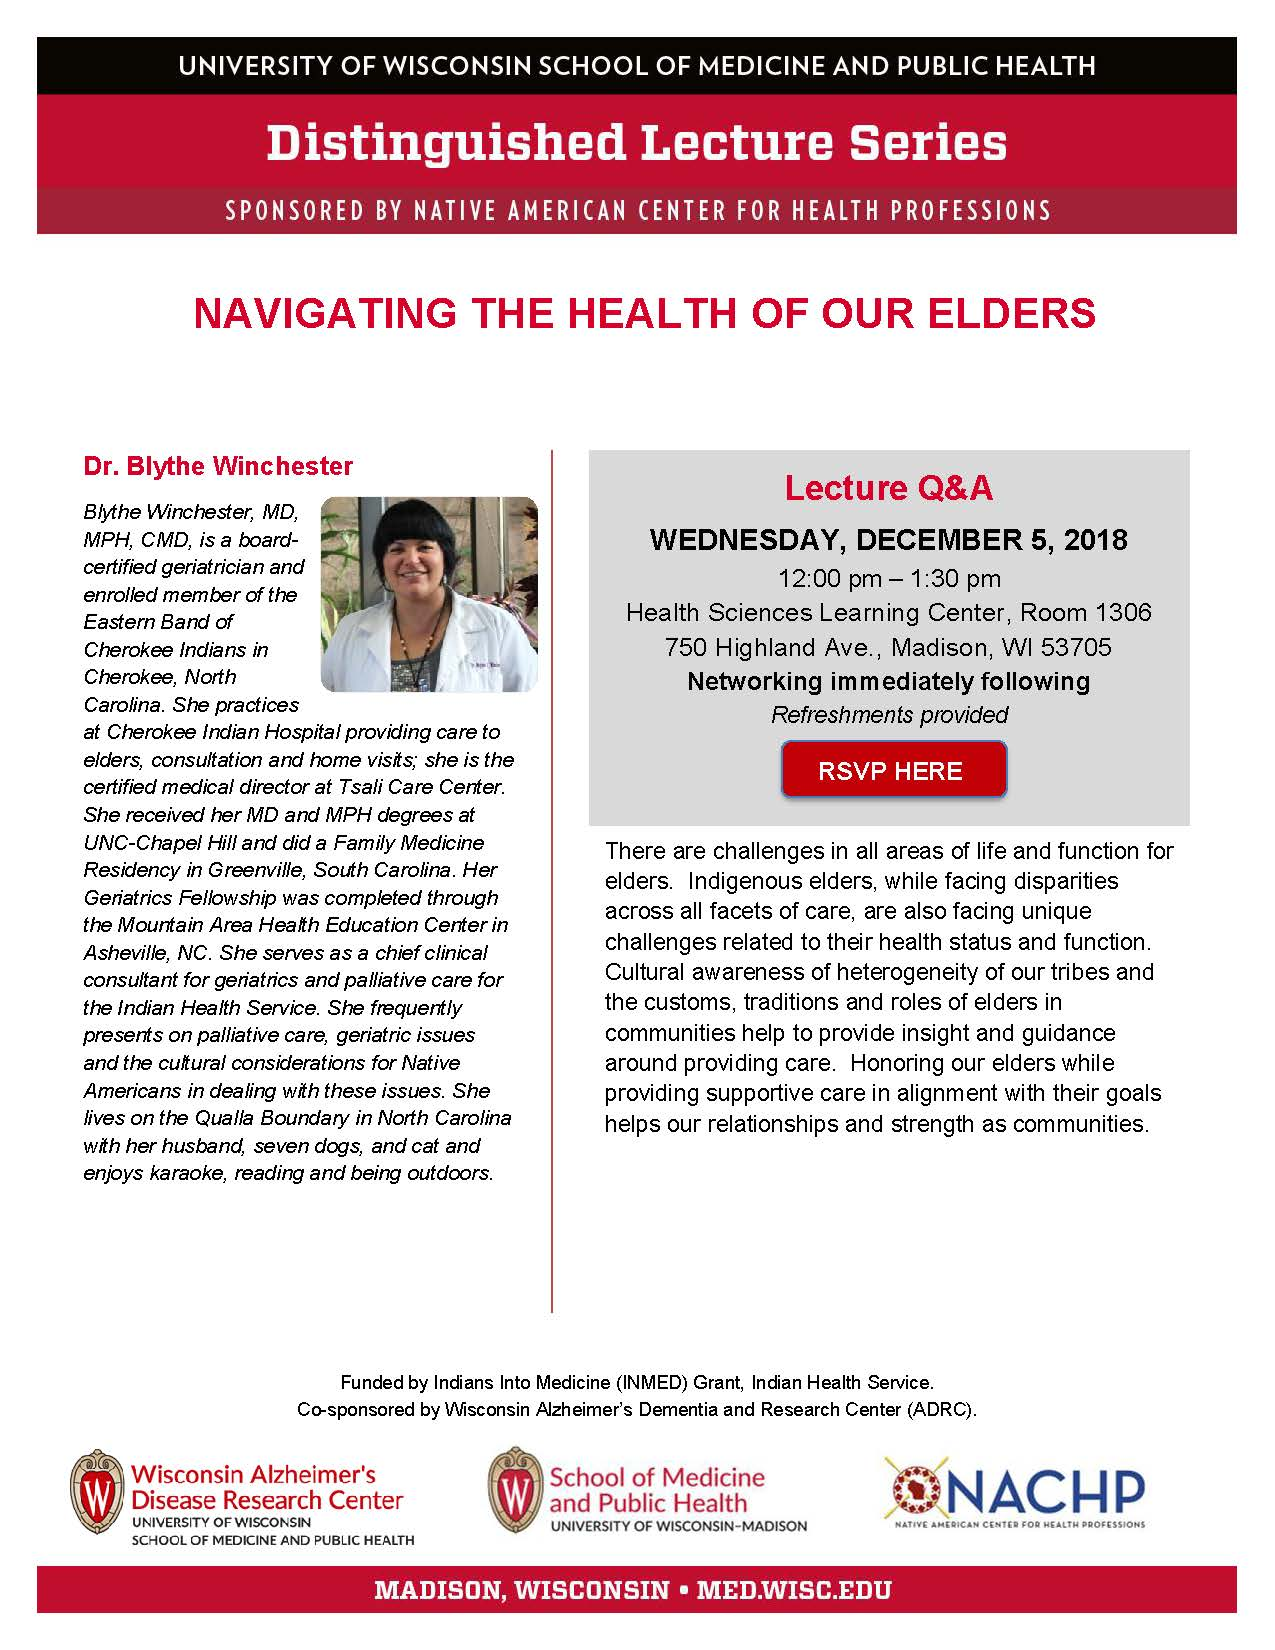 NACHP Distinguished Lecture Series features Dr. Blythe Winchester